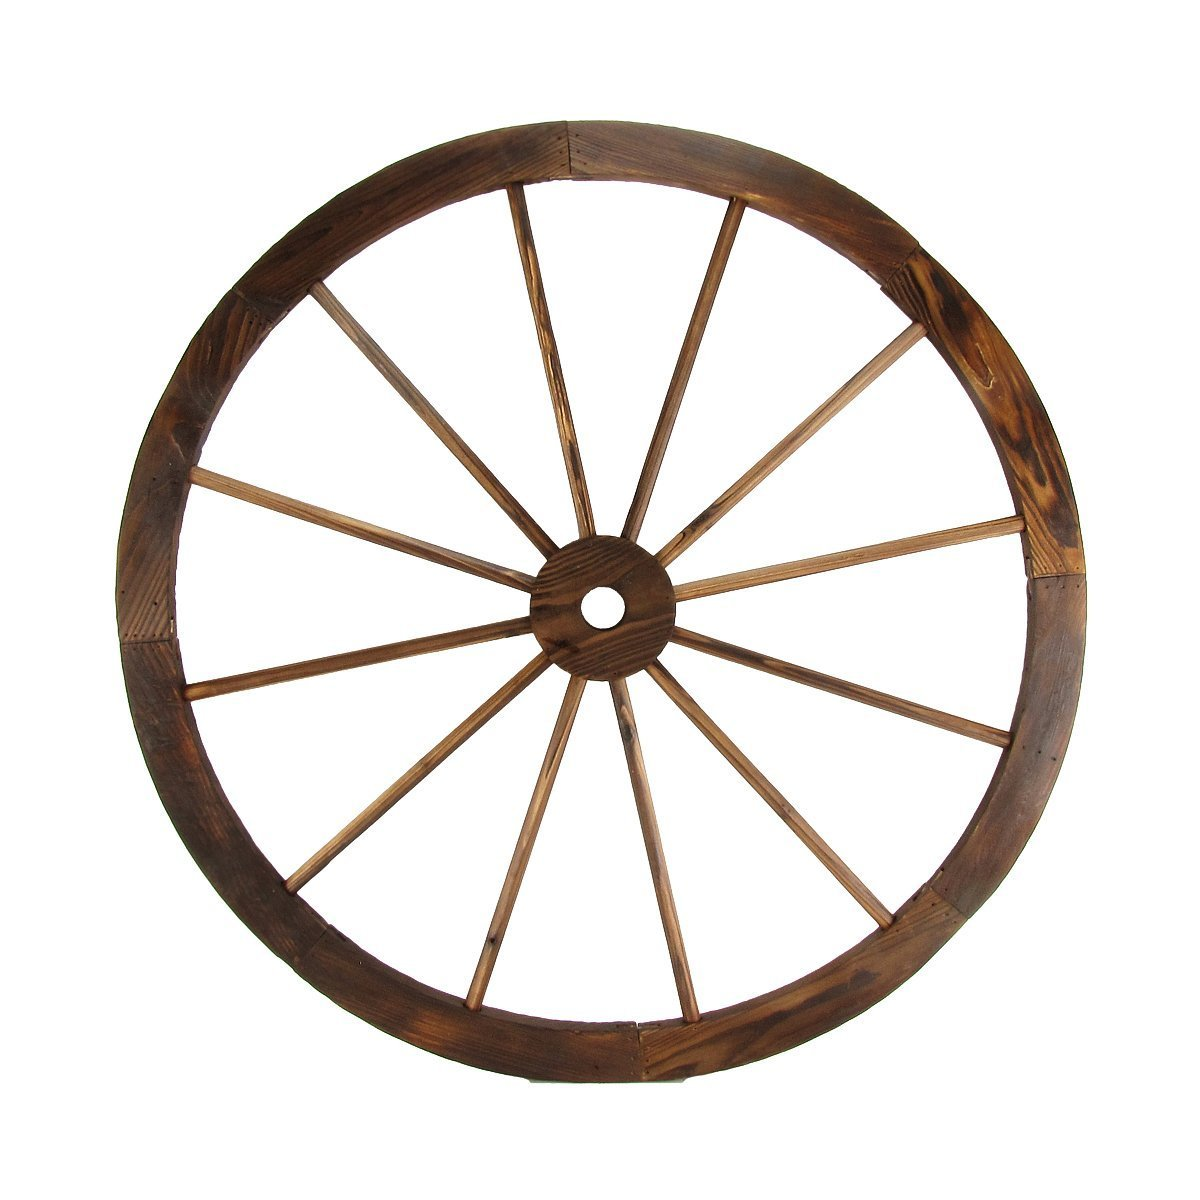 "TreasureGurus, LLC Large 32"" Wood Wagon Wheel Outdoor Rustic Yard or Garden Decor"